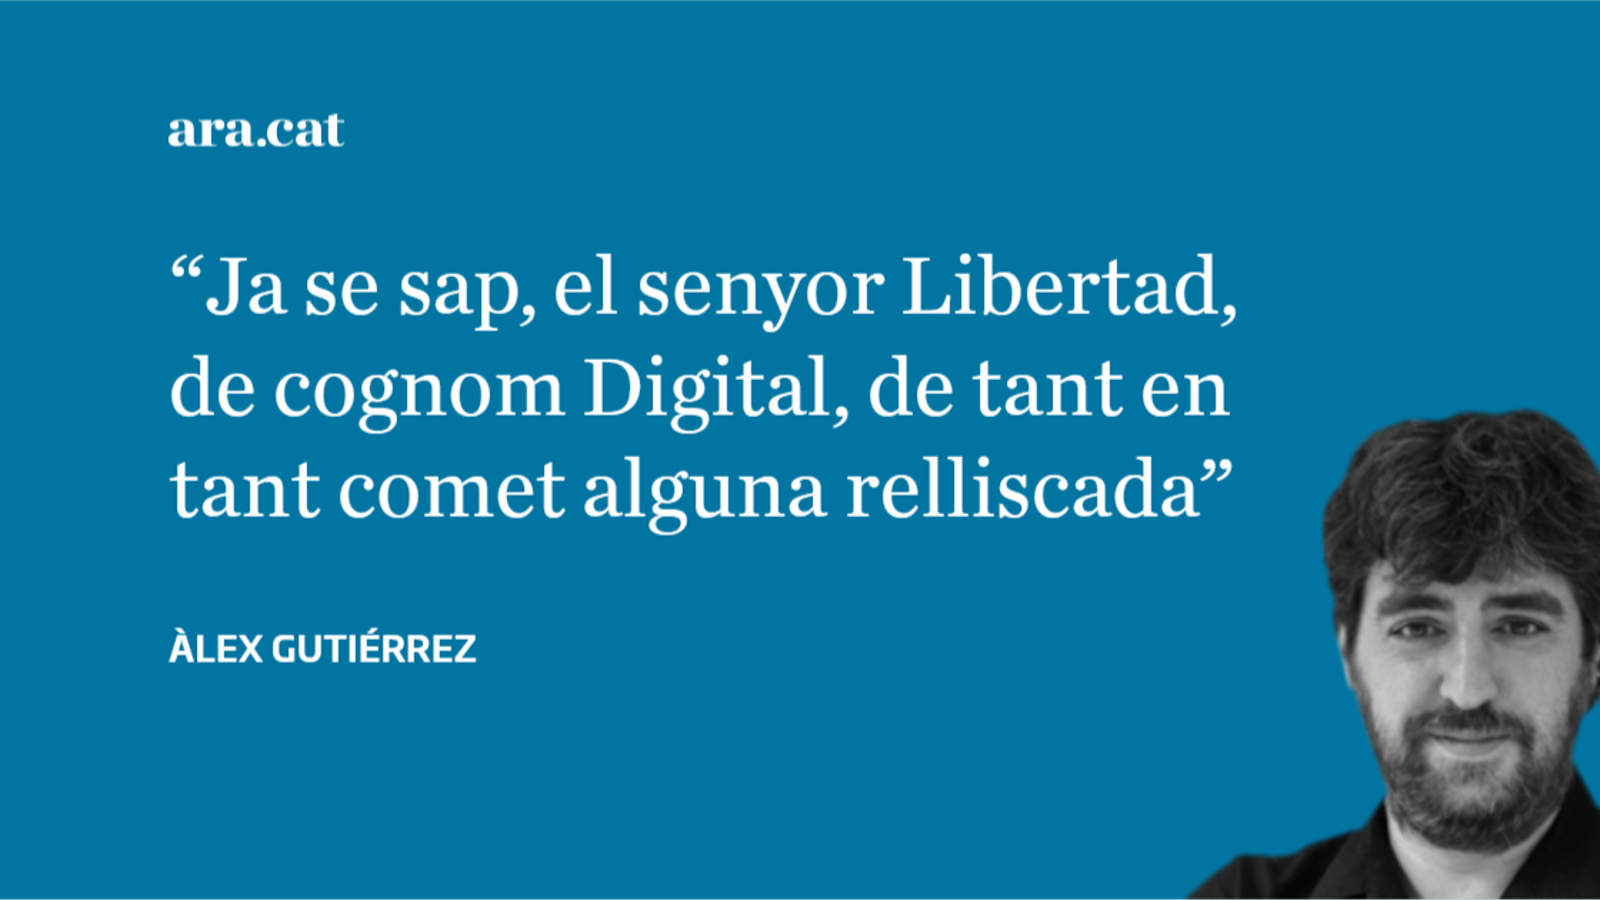 L'entranyable intent de 'Libertad Digital' de denigrar France Press